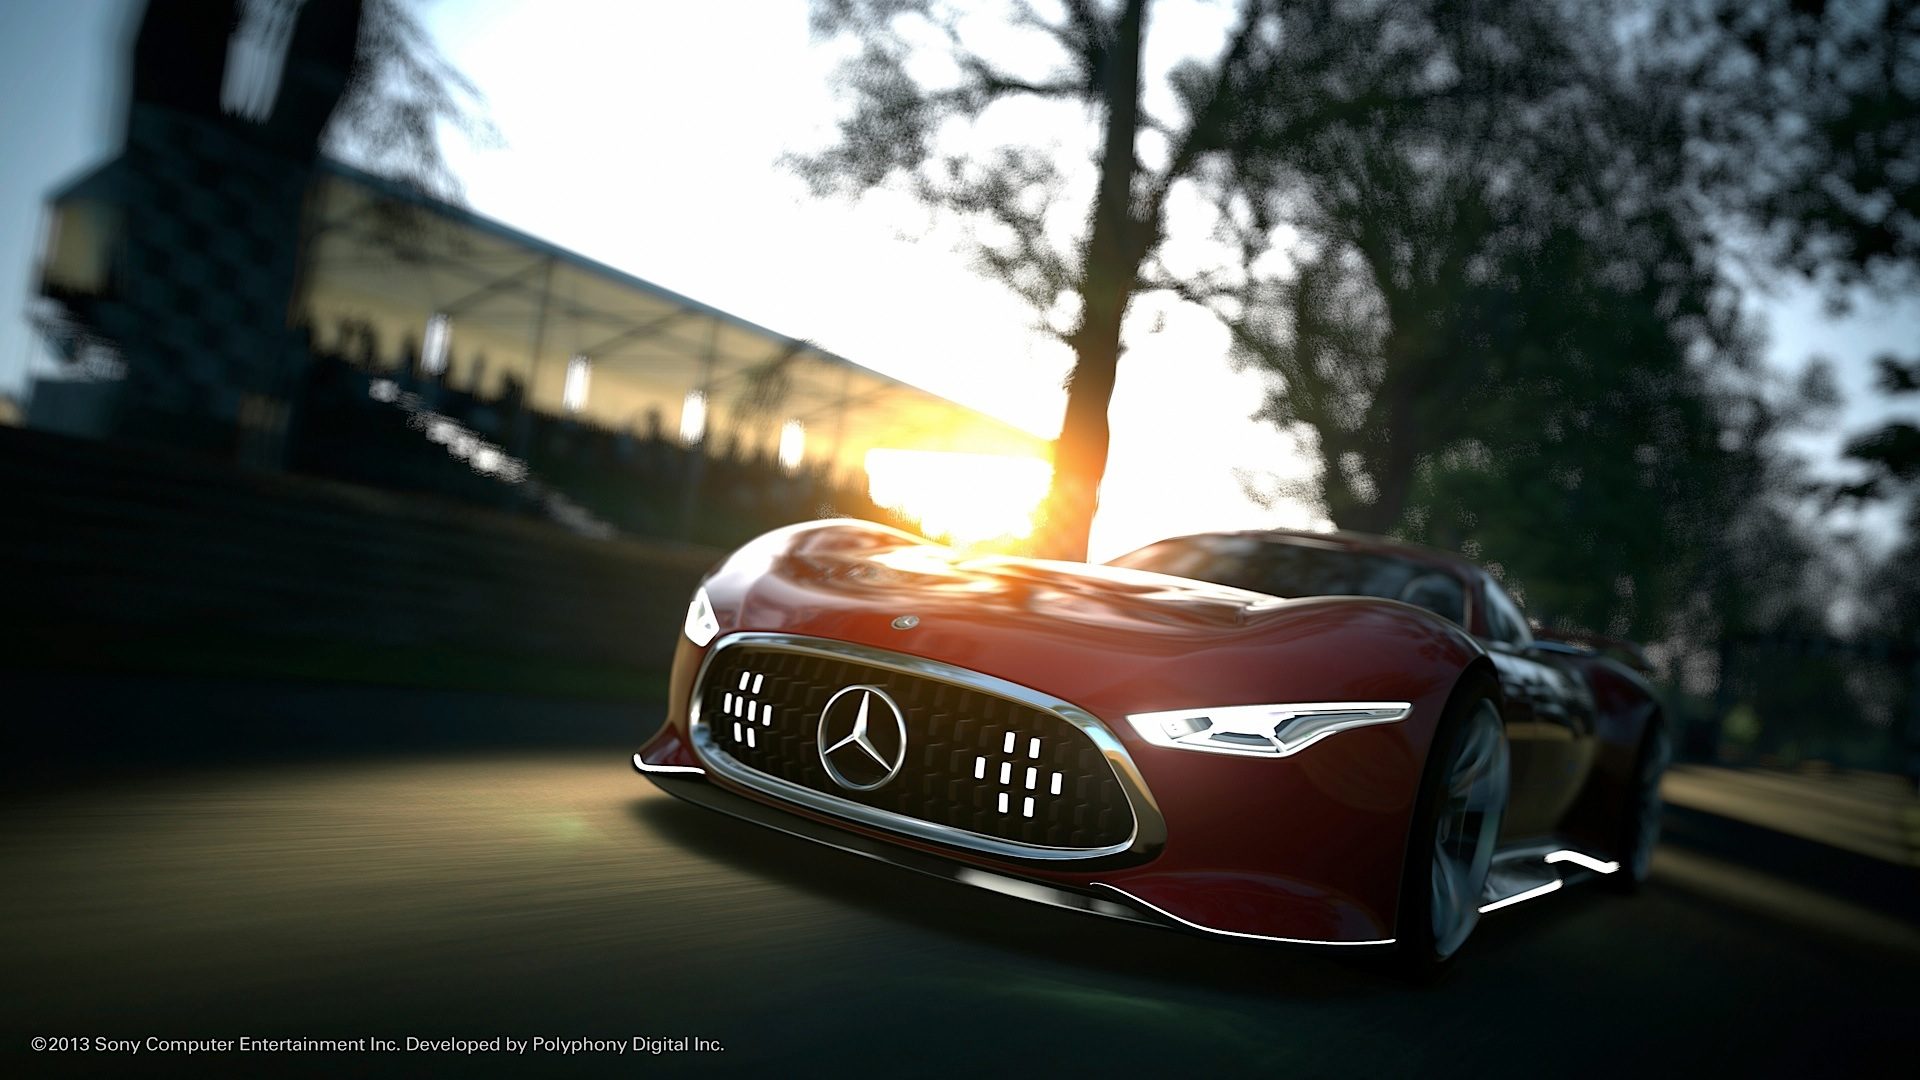 2013 - [Mercedes-Benz] AMG Vision Gran Turismo - Page 2 It-sure-is-tight-in-the-amg-vision-gran-turismo-photo-gallery-1080p-10